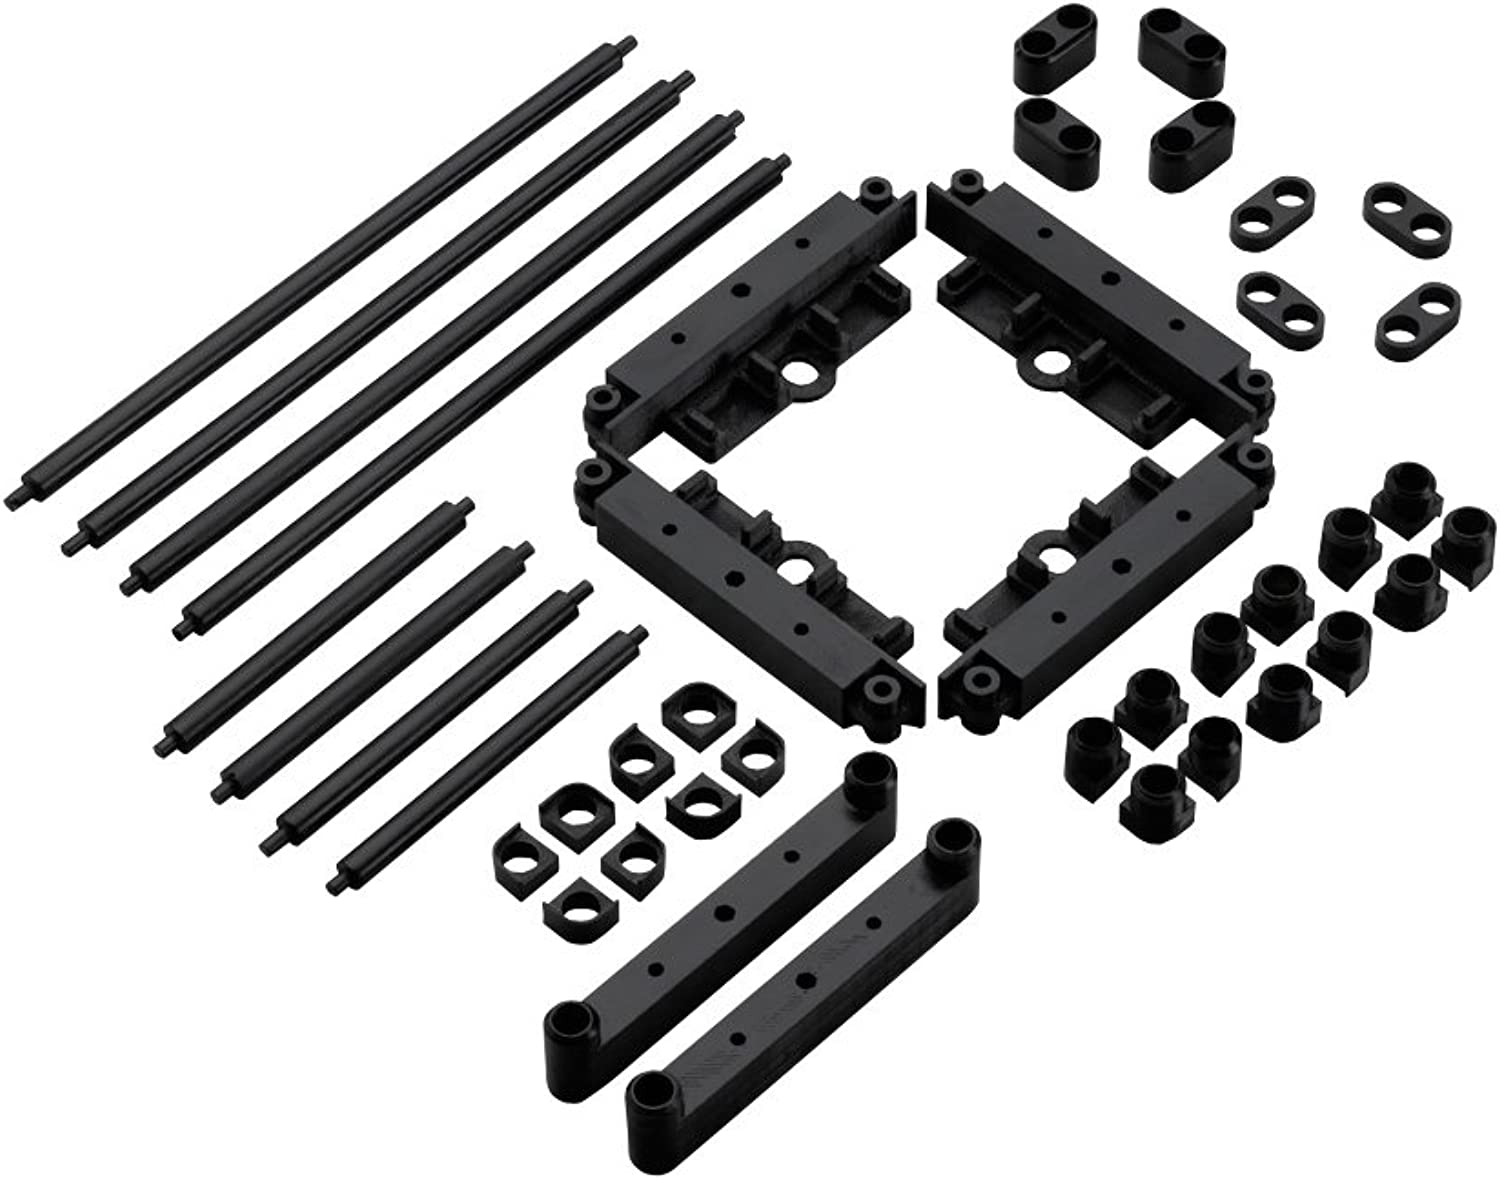 Di stage Extension Set 01 Layer Unit Black Version by Max Factory